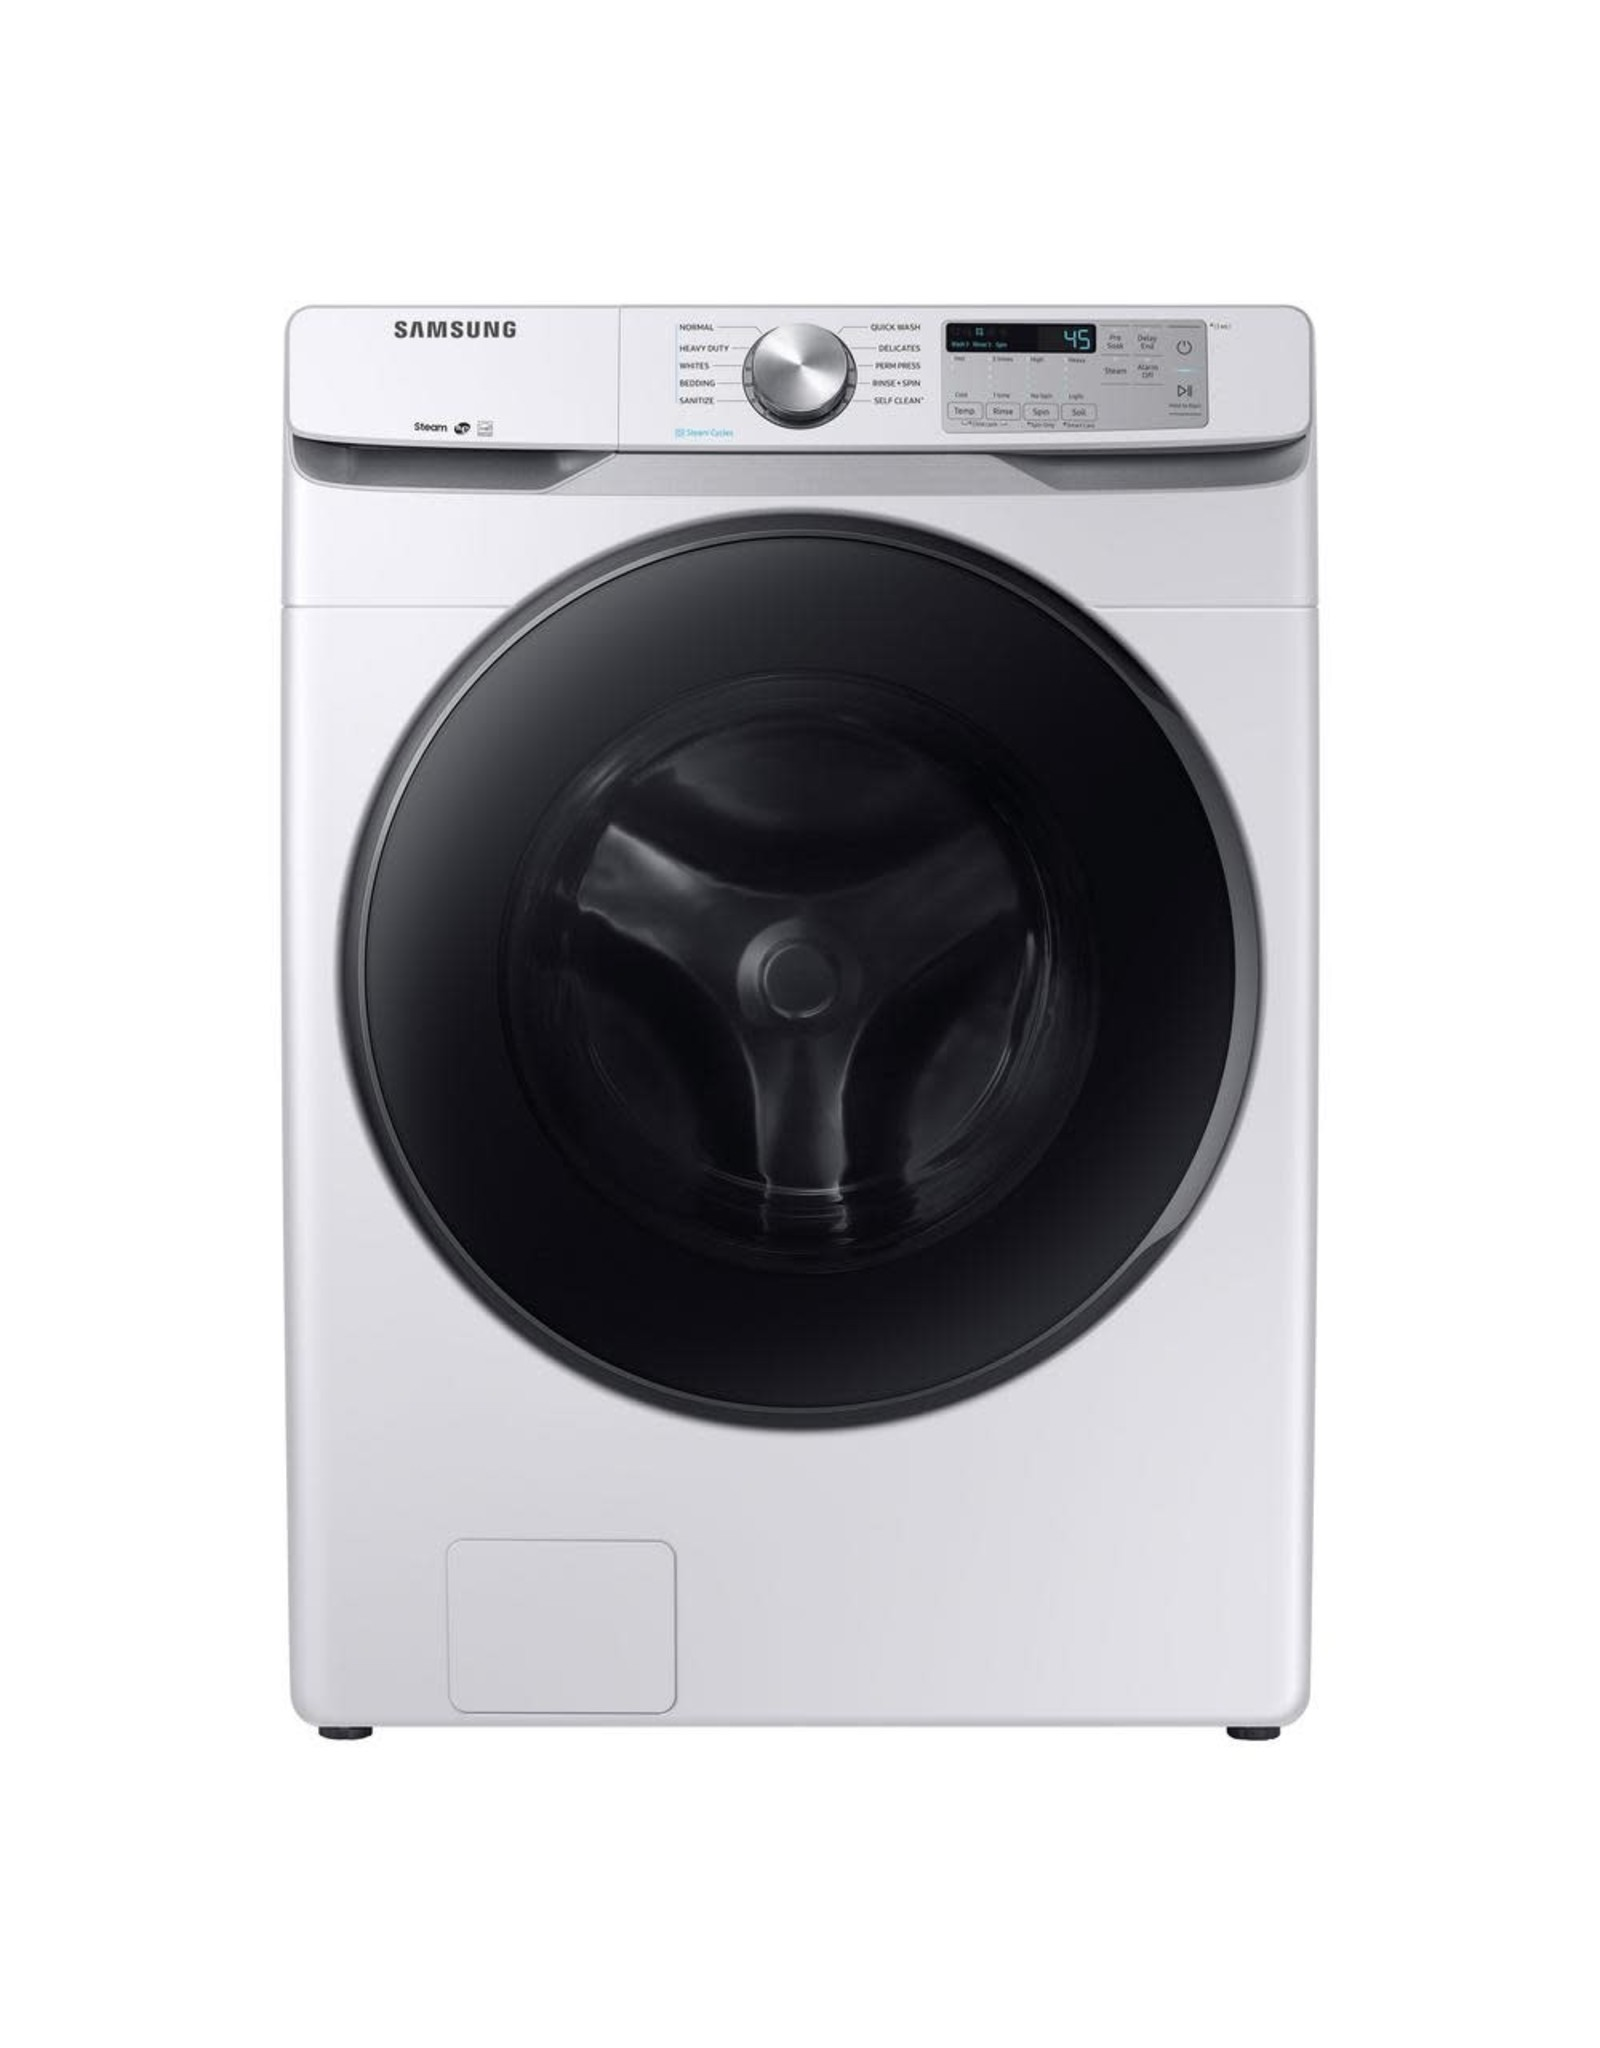 SAMSUNG WF45R6100AW /016136 4.5 cu. ft. High-Efficiency White Front Load Washing Machine with Steam, ENERGY STAR